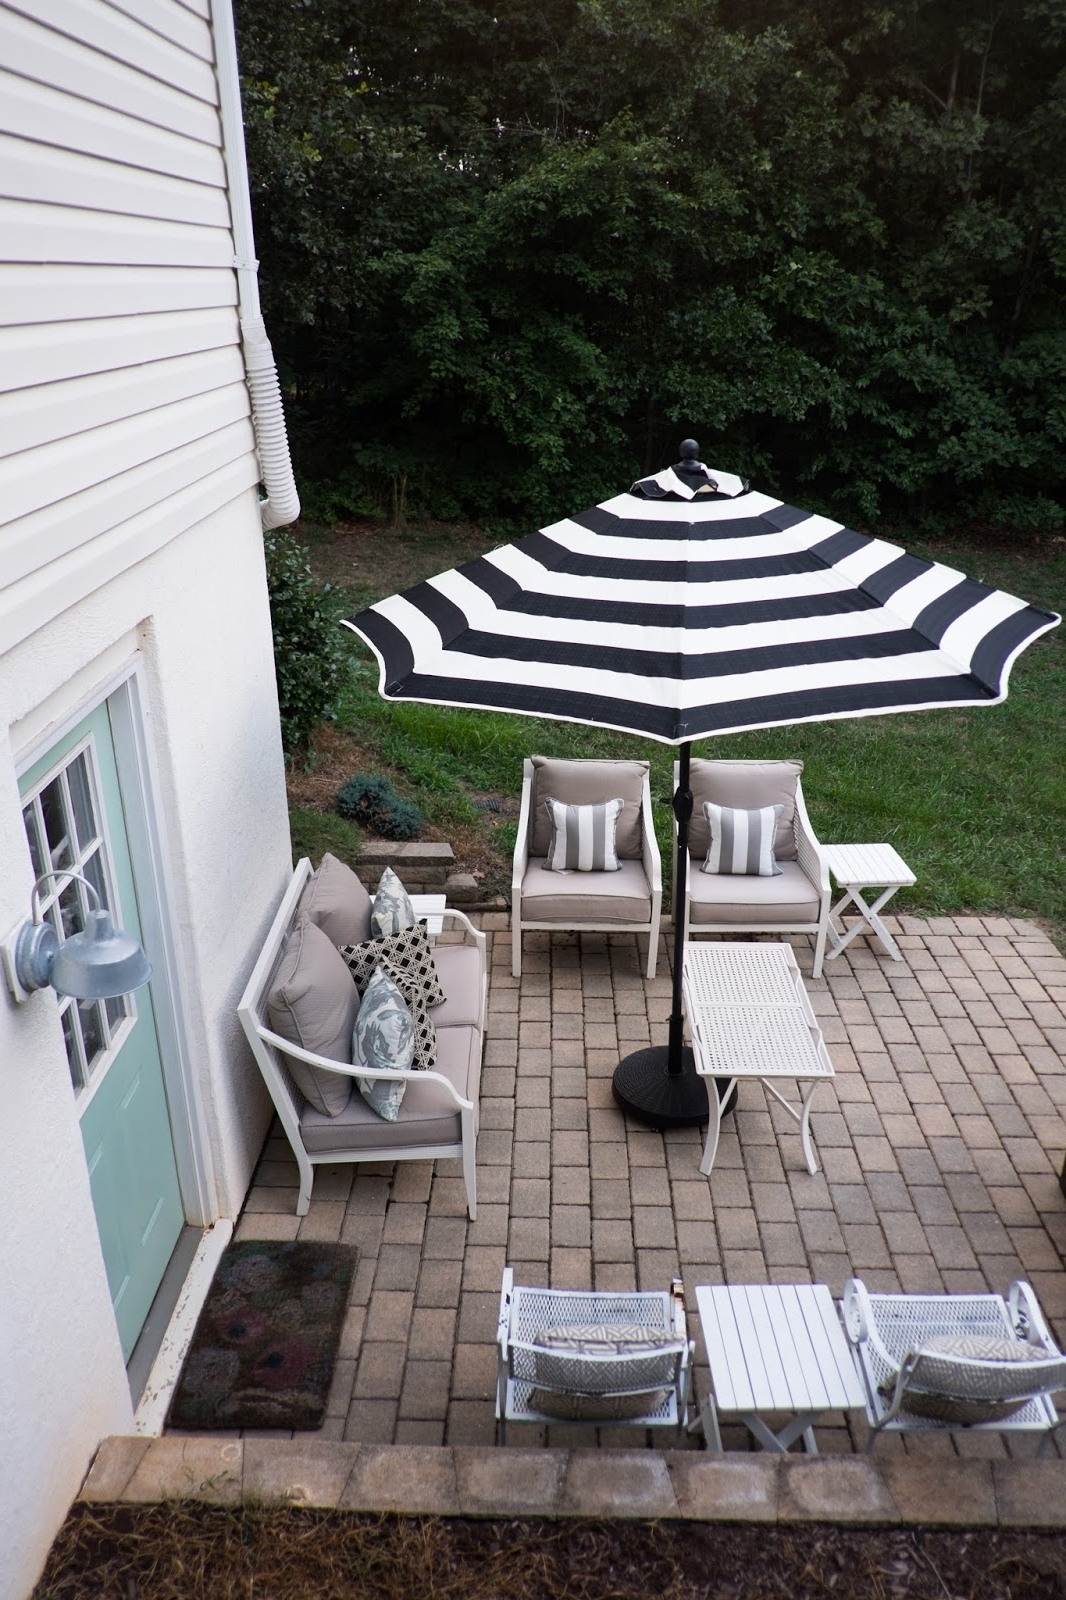 Domestic Fashionista: Backyard Patio Umbrellas Pertaining To Latest Black And White Striped Patio Umbrellas (View 8 of 20)